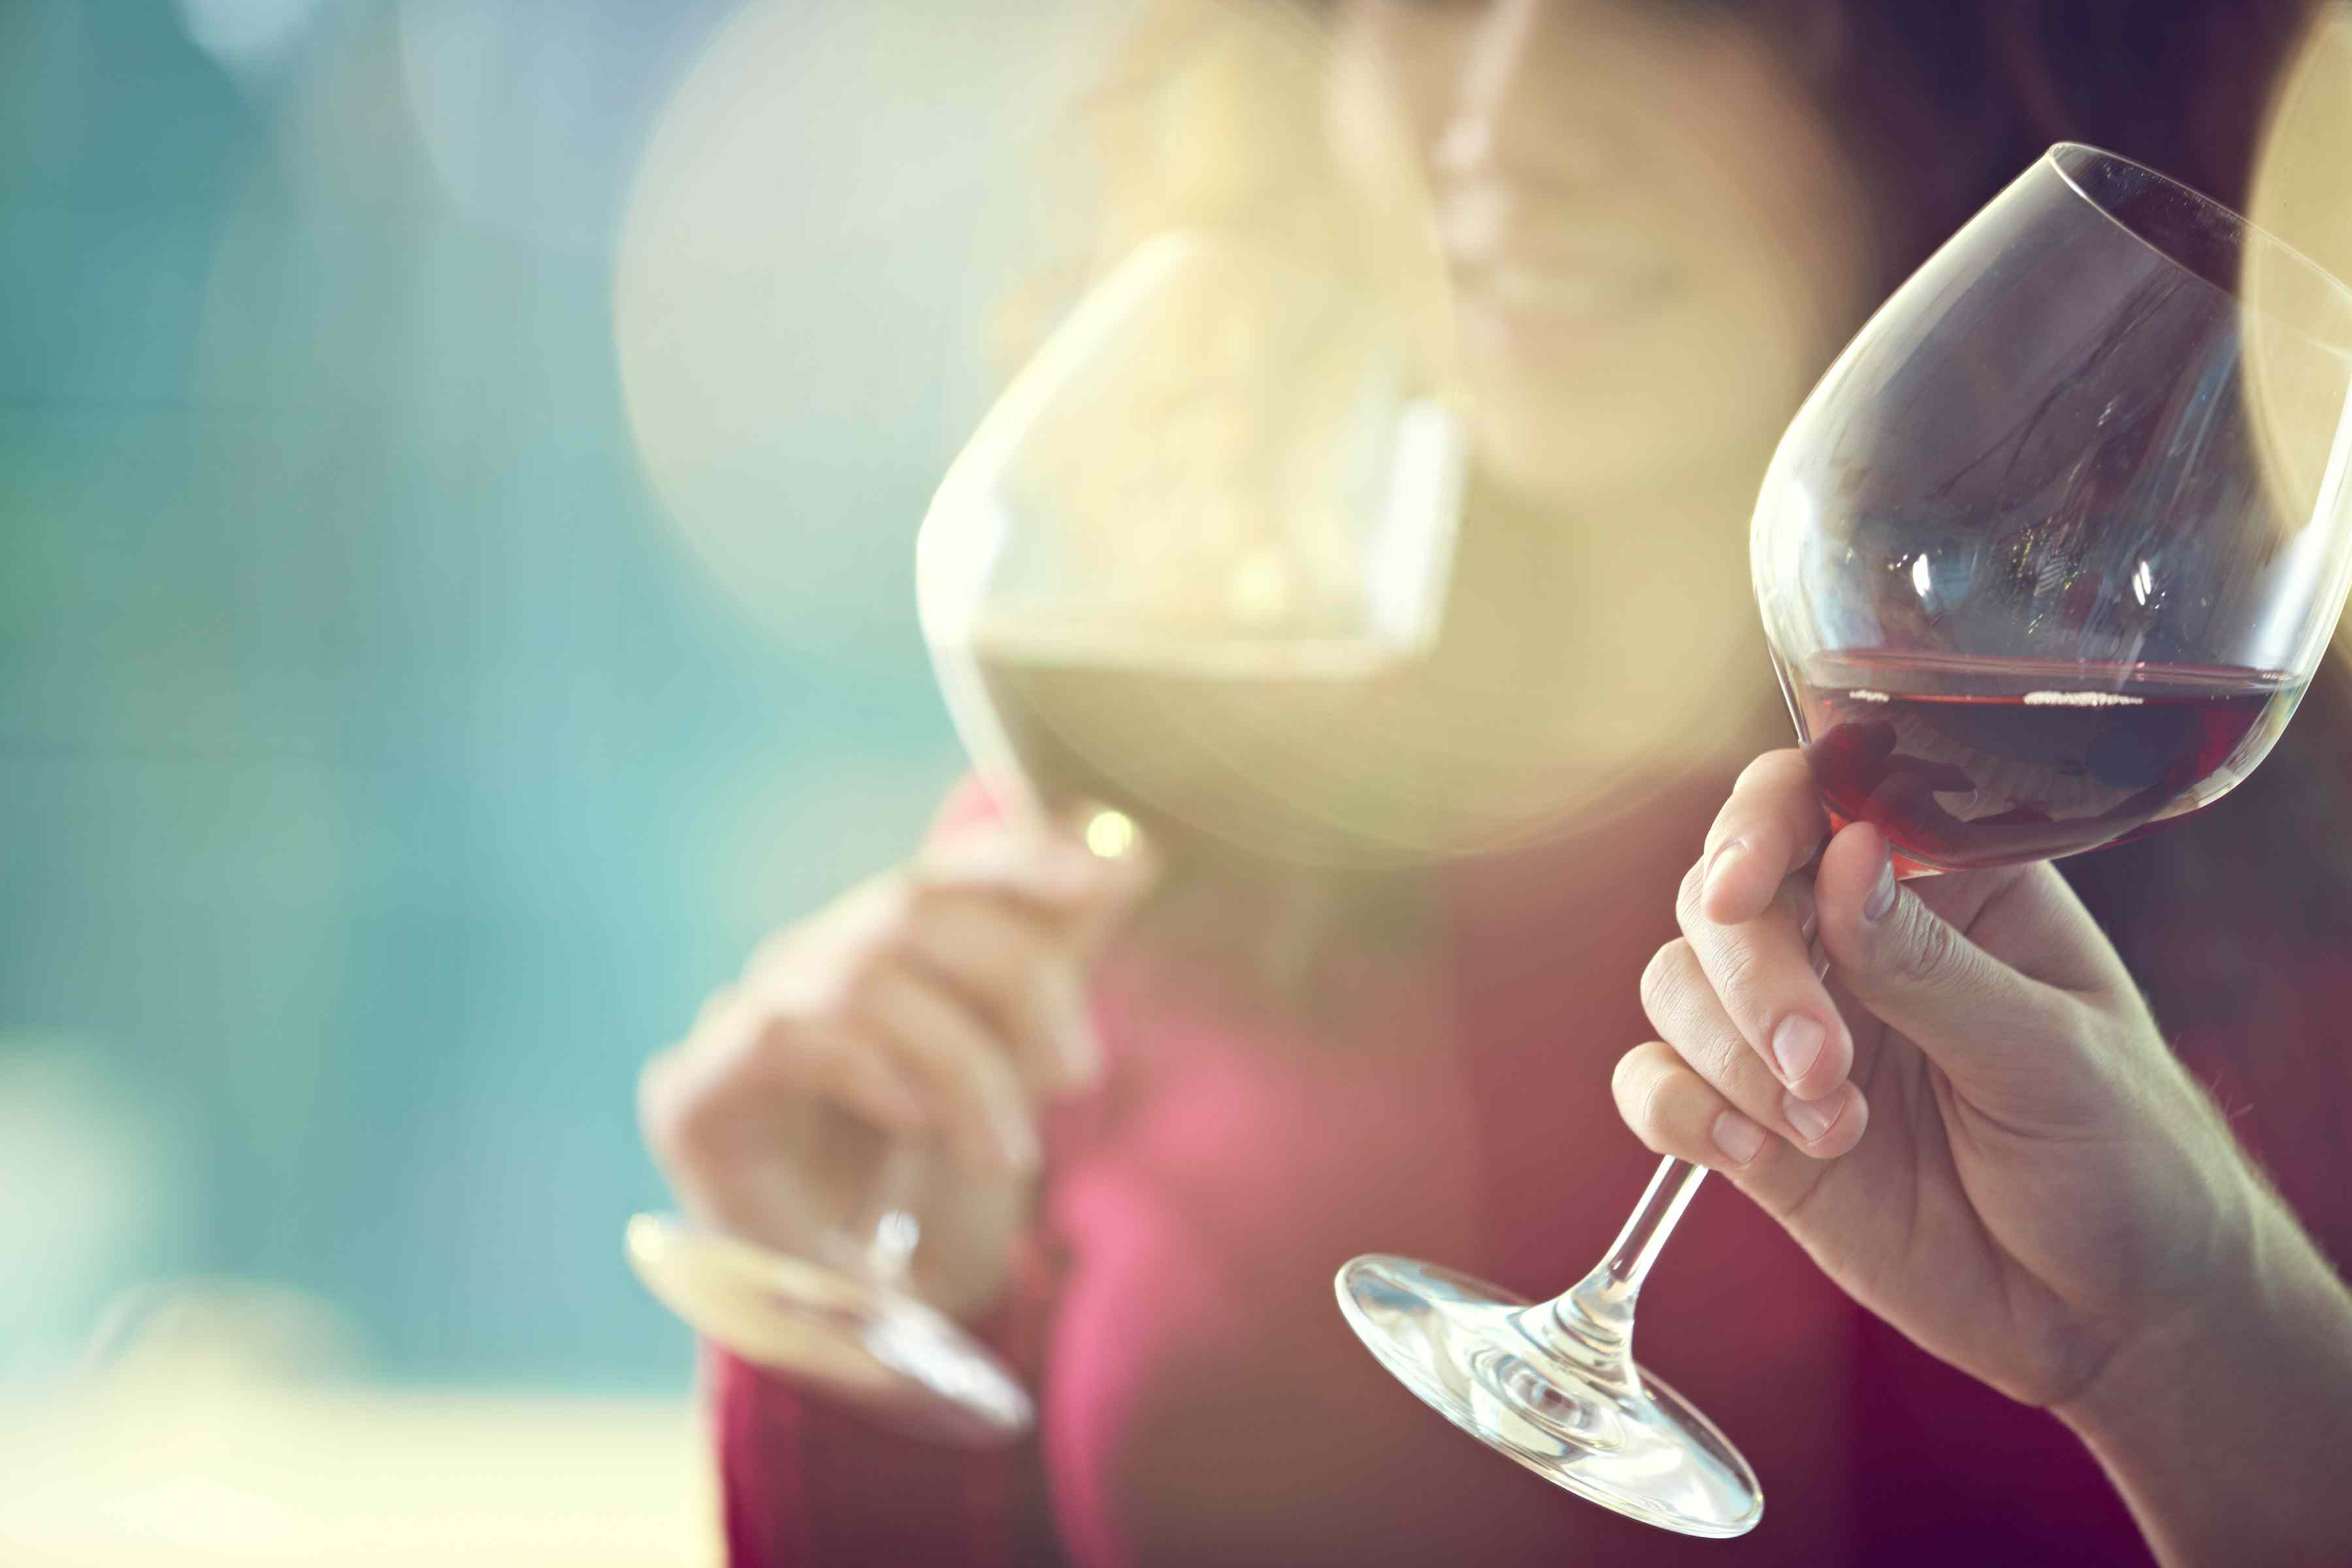 Woman drinking red wine with another person